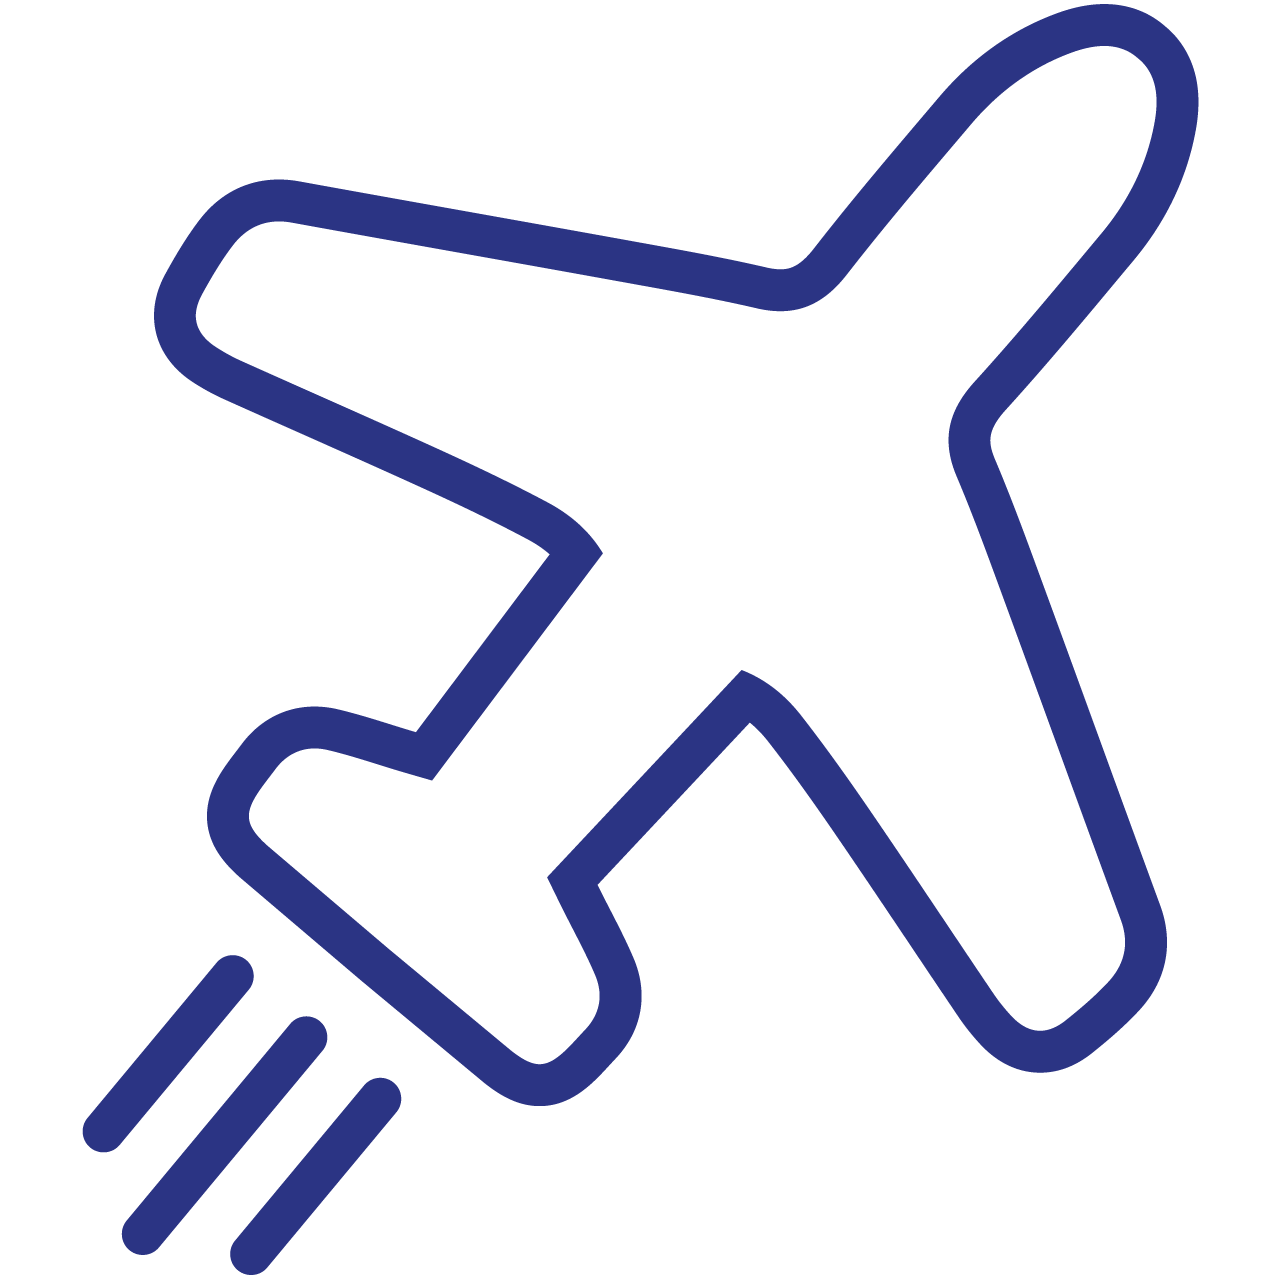 A plane which represents quick shipping